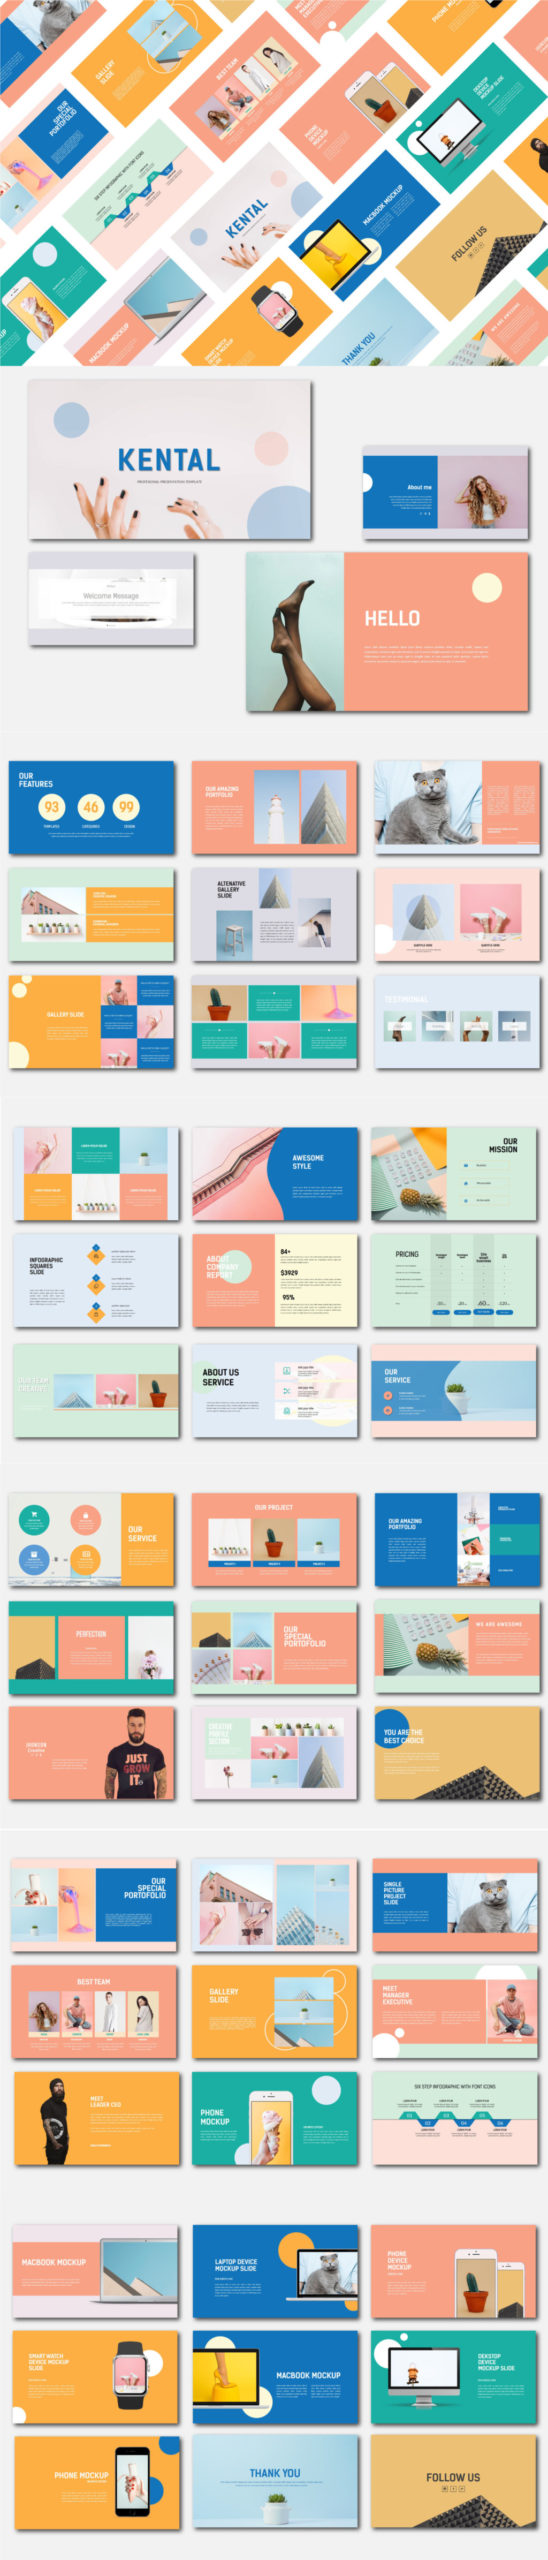 KENTAL - FREE MINIMAL PRESENTATION TEMPLATE